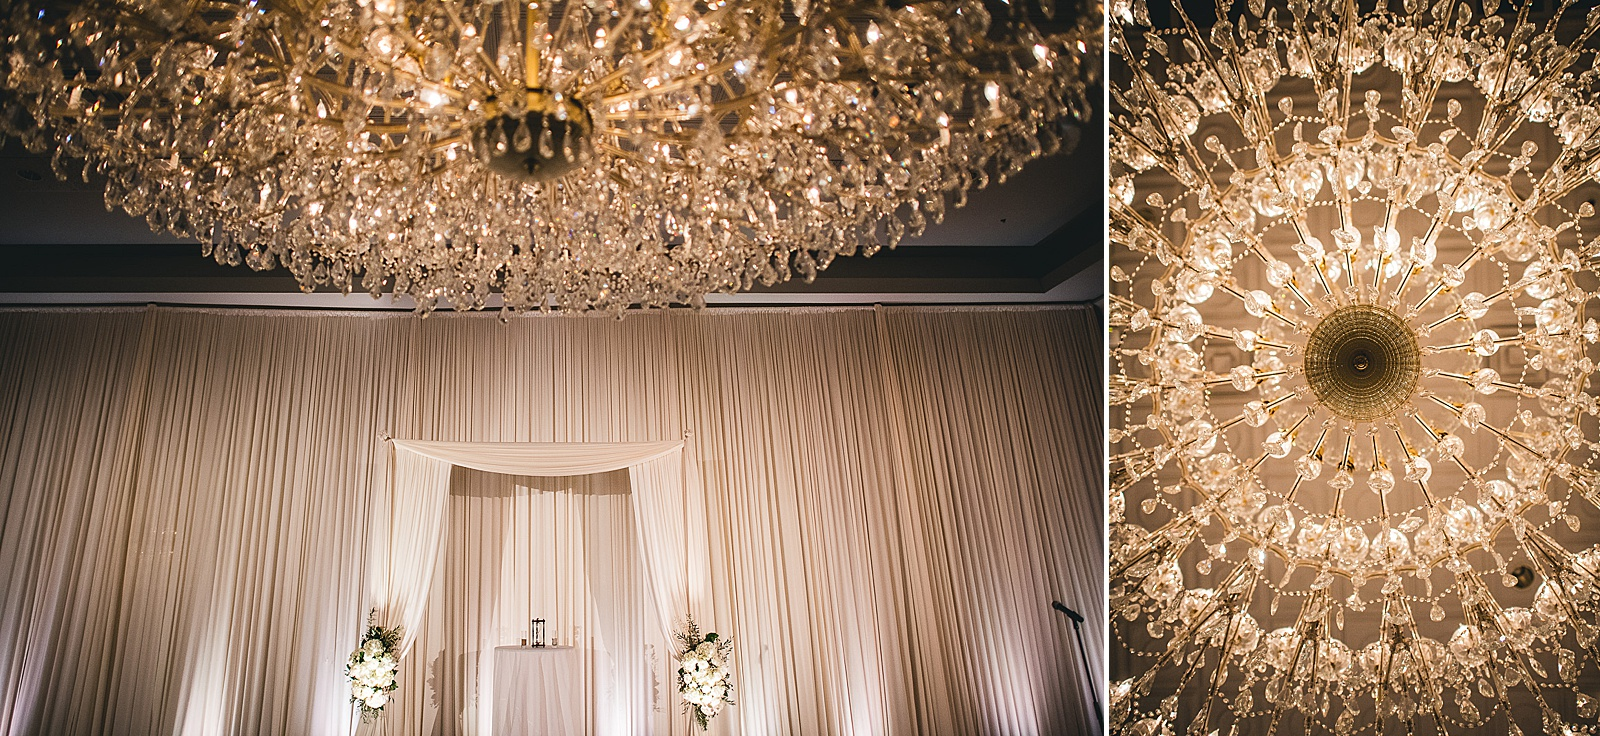 21 beautiful ceremony at drury lane - Oakbrook Wedding Photos at Drury Lane // Marina + Joe